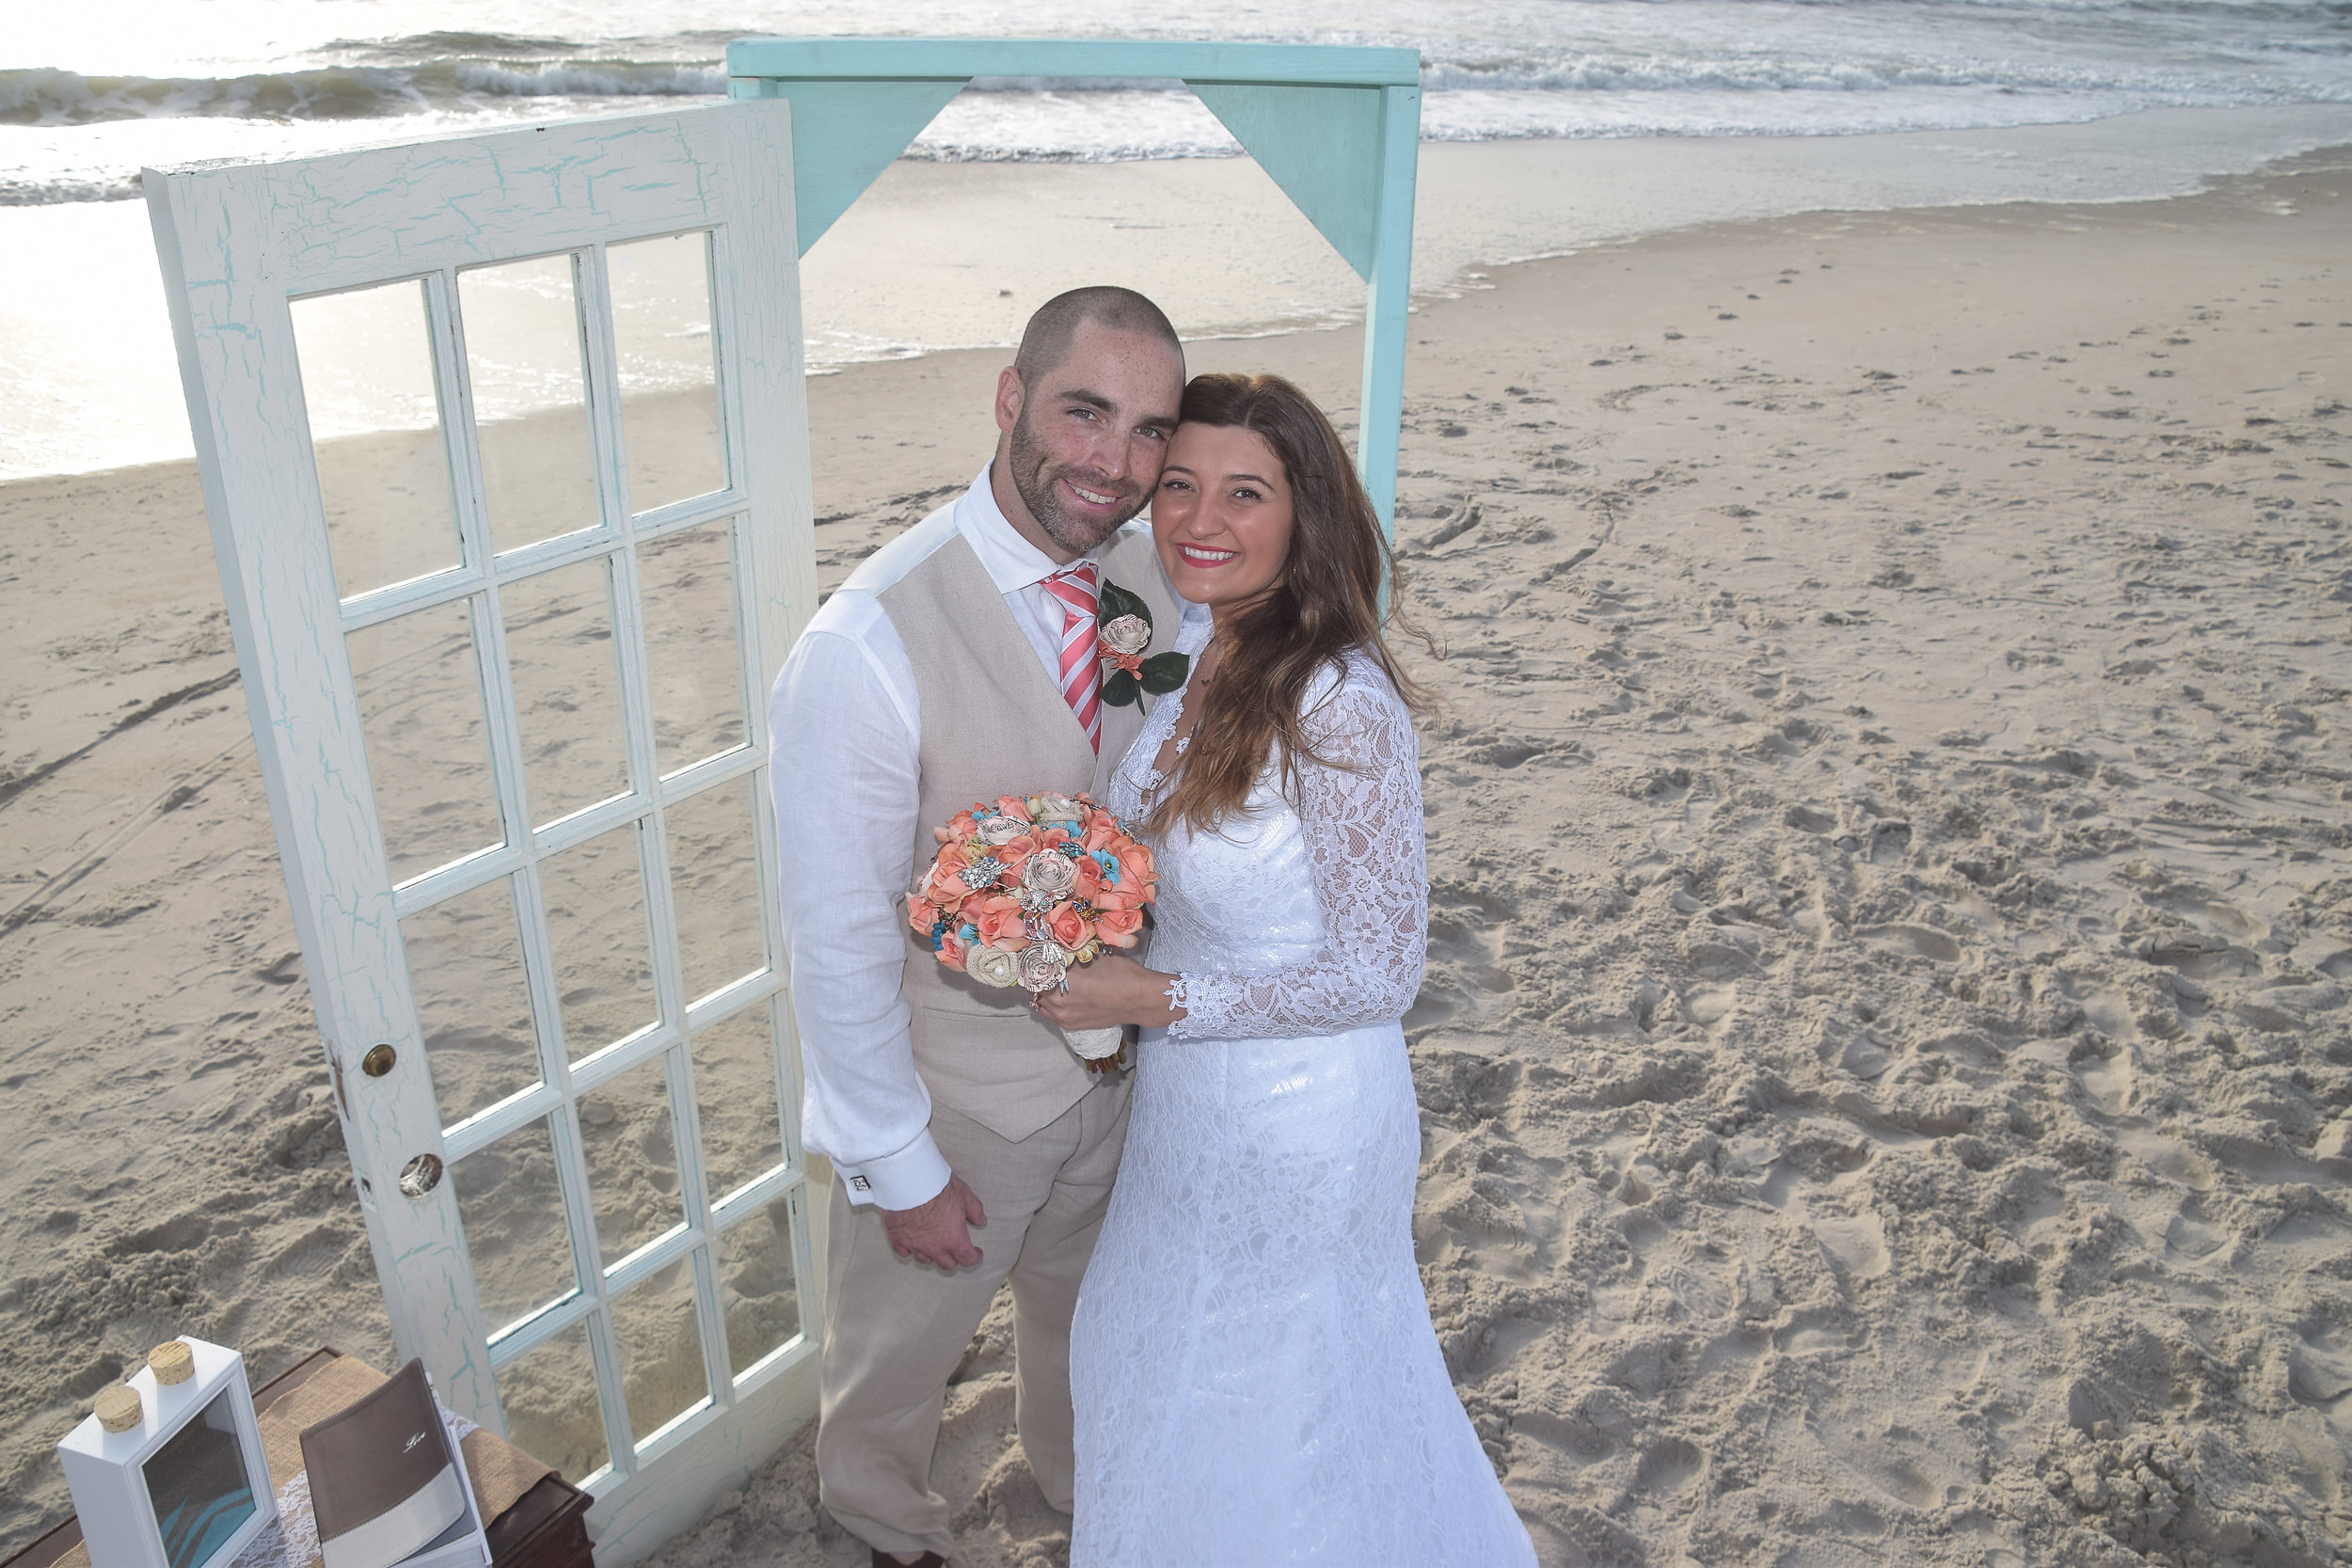 Newly married couple posing on the beach.